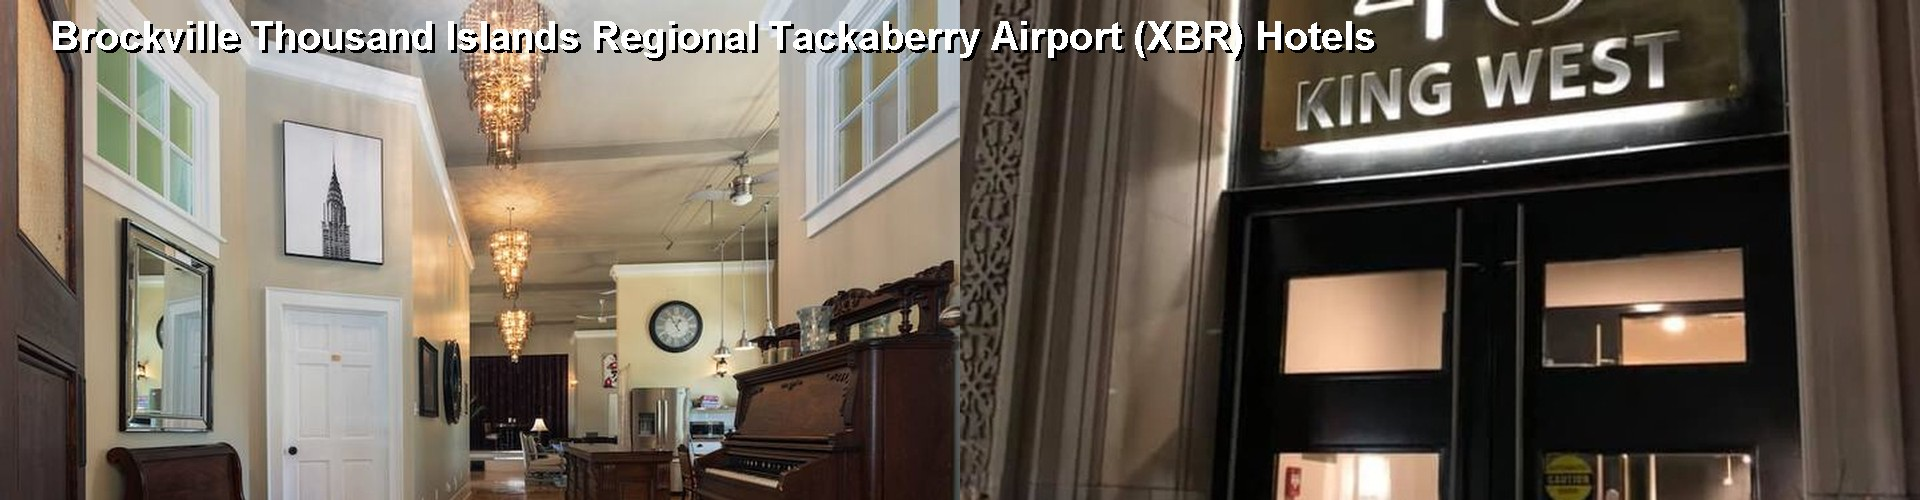 5 Best Hotels near Brockville Thousand Islands Regional Tackaberry Airport (XBR)